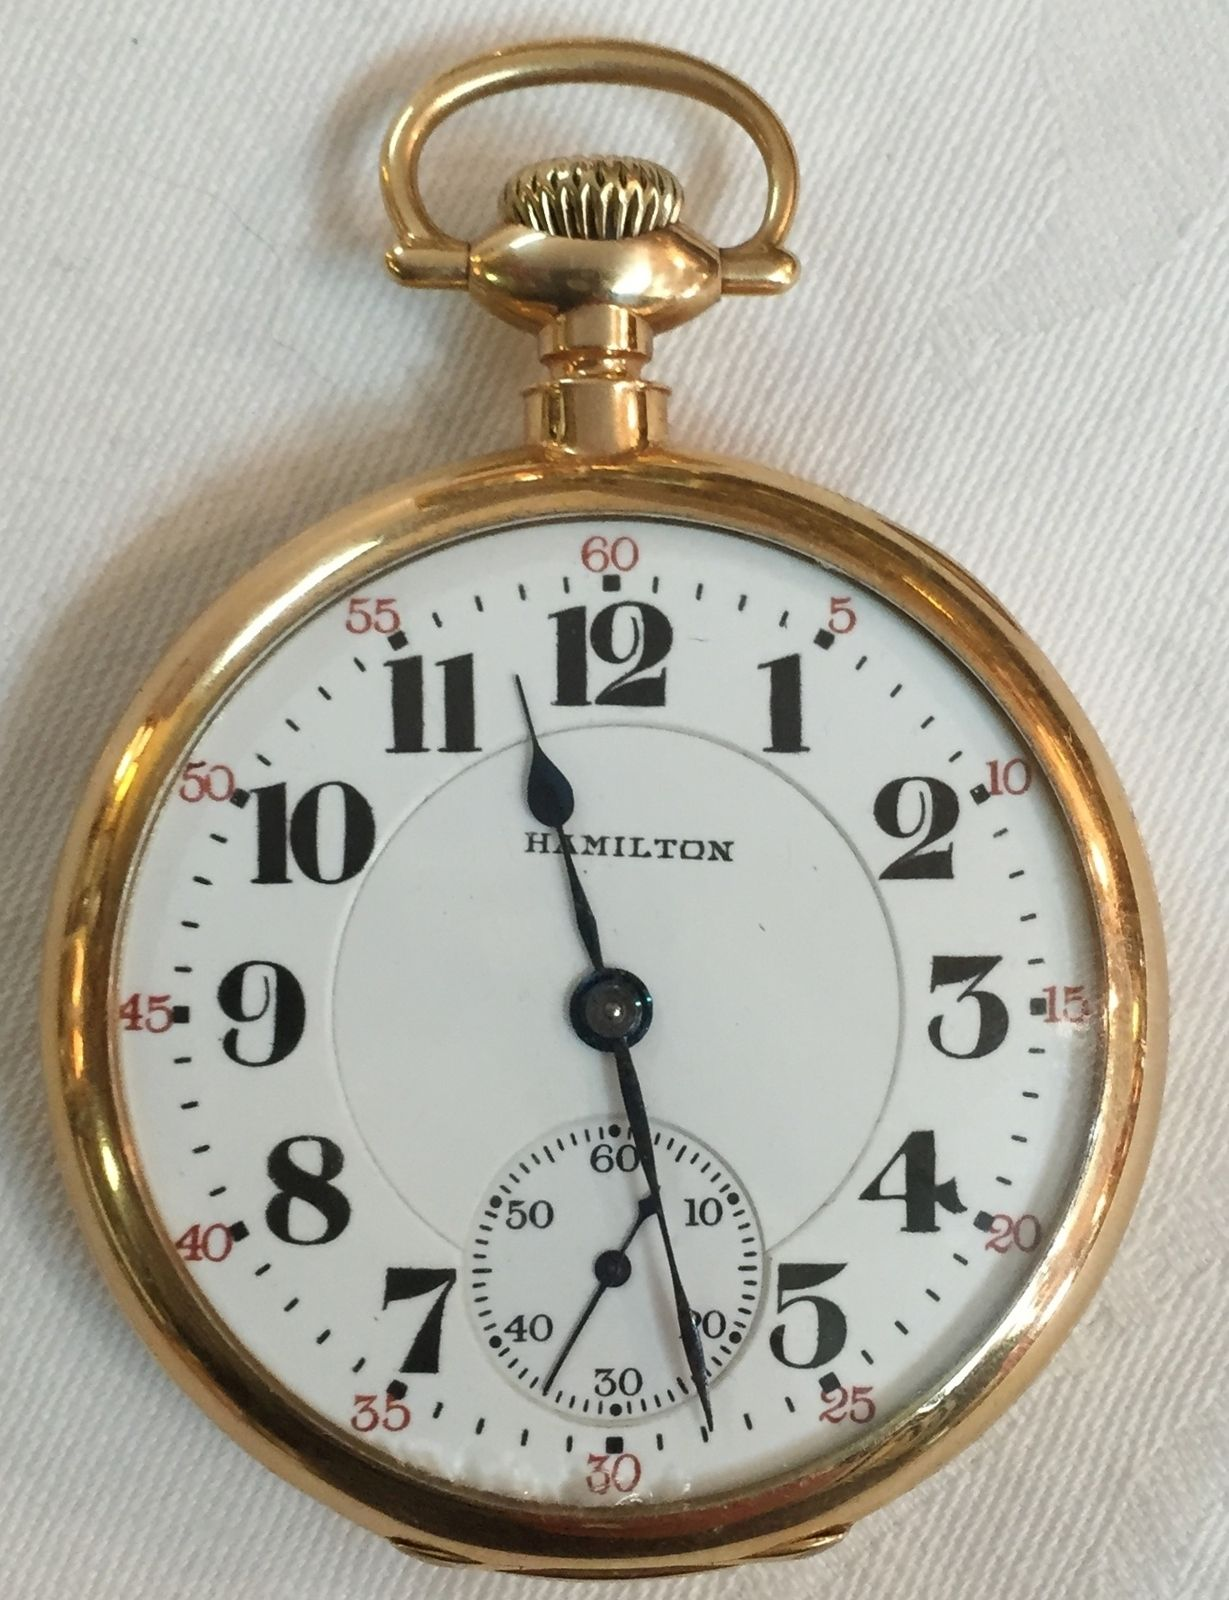 1920 HAMILTON 14K GOLD 21 JEWL RAILROAD GRADE 992 POCKET WATCH sz 16 IN  CASE Pocket